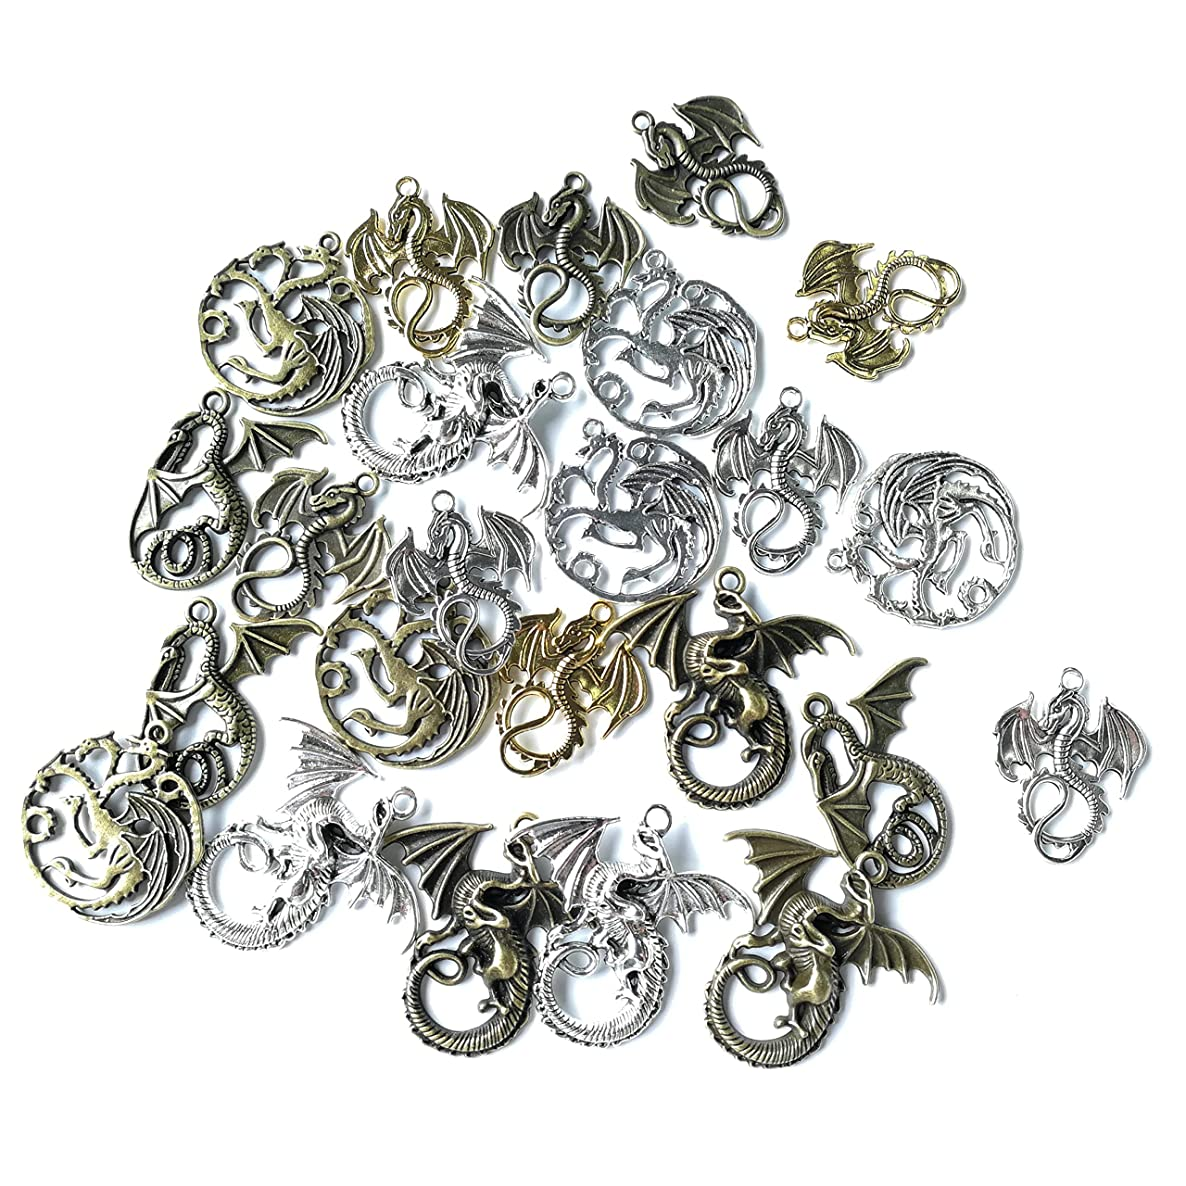 Sumje 24pcs Craft Supplies Mixed Flying Dragon Charms Pendants Beads Charms Pendants for Crafting, Jewelry Findings Making Accessory for DIY Necklace Bracelet (Dragon Style)